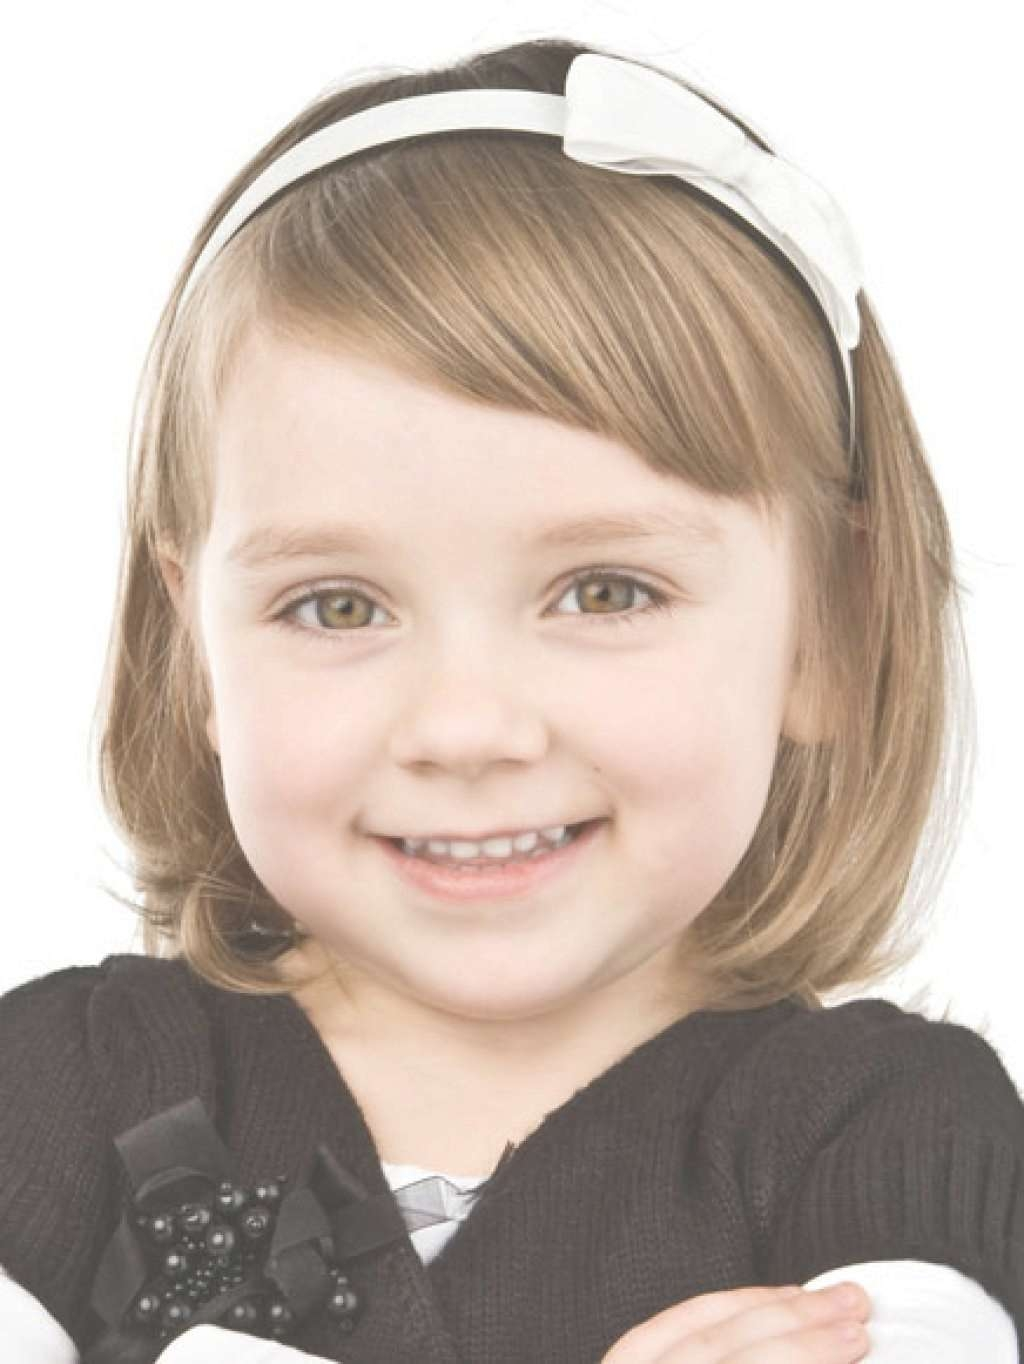 10 Cute Styling Ideas On Short Hair For Little Girl   Hair Style Throughout Newest Pixie Hairstyles For Little Girl (View 11 of 15)